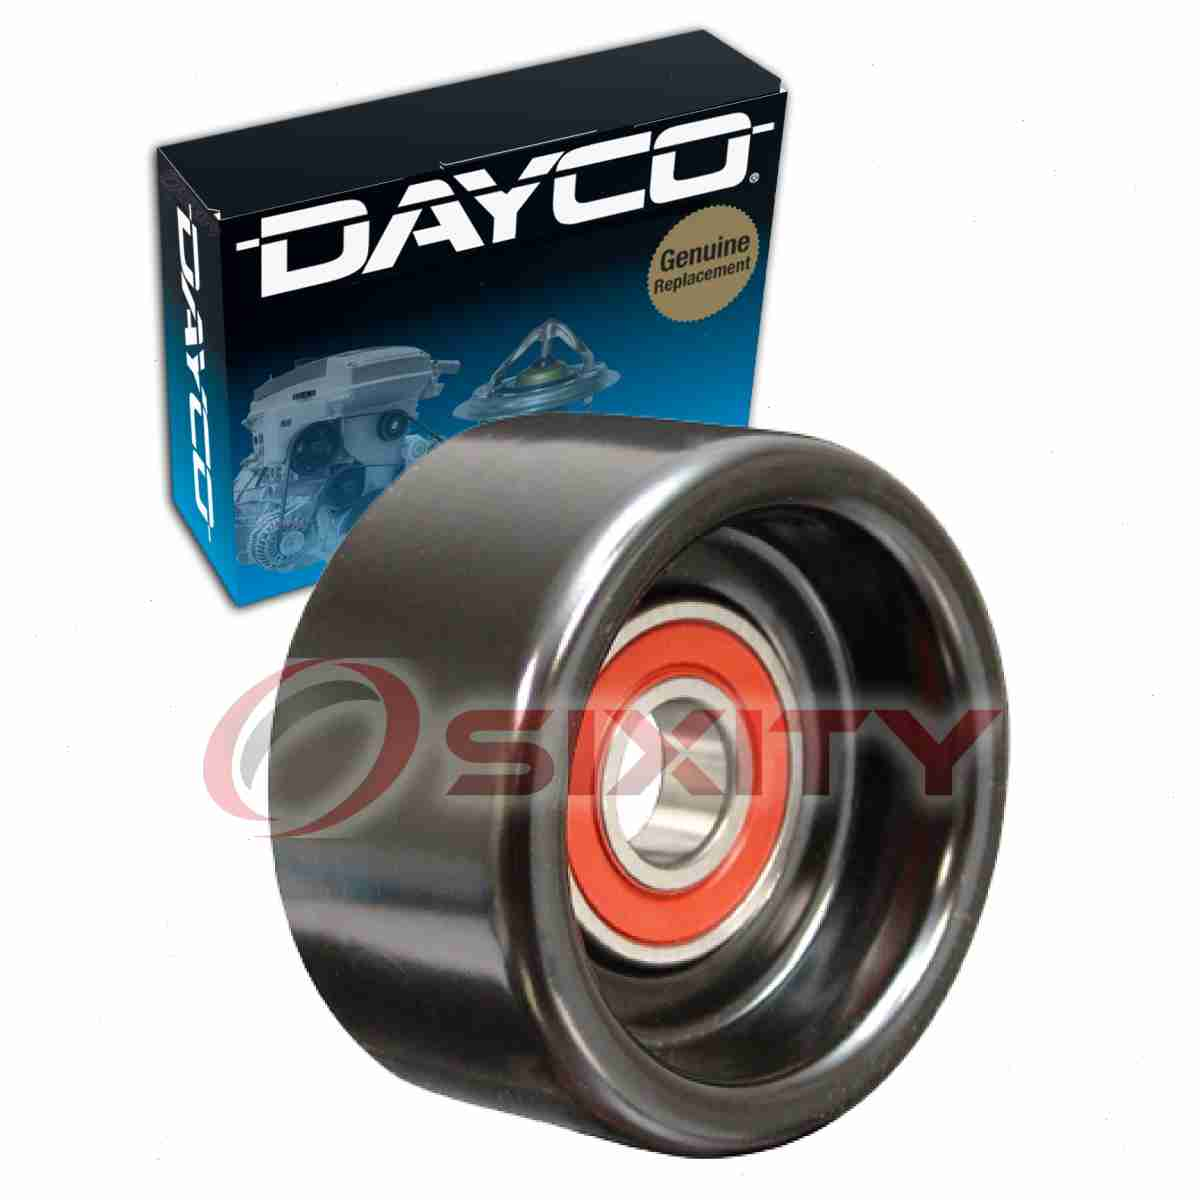 Dayco Drive Belt Pulley For 2007-2012 Acura RDX 2.3L L4